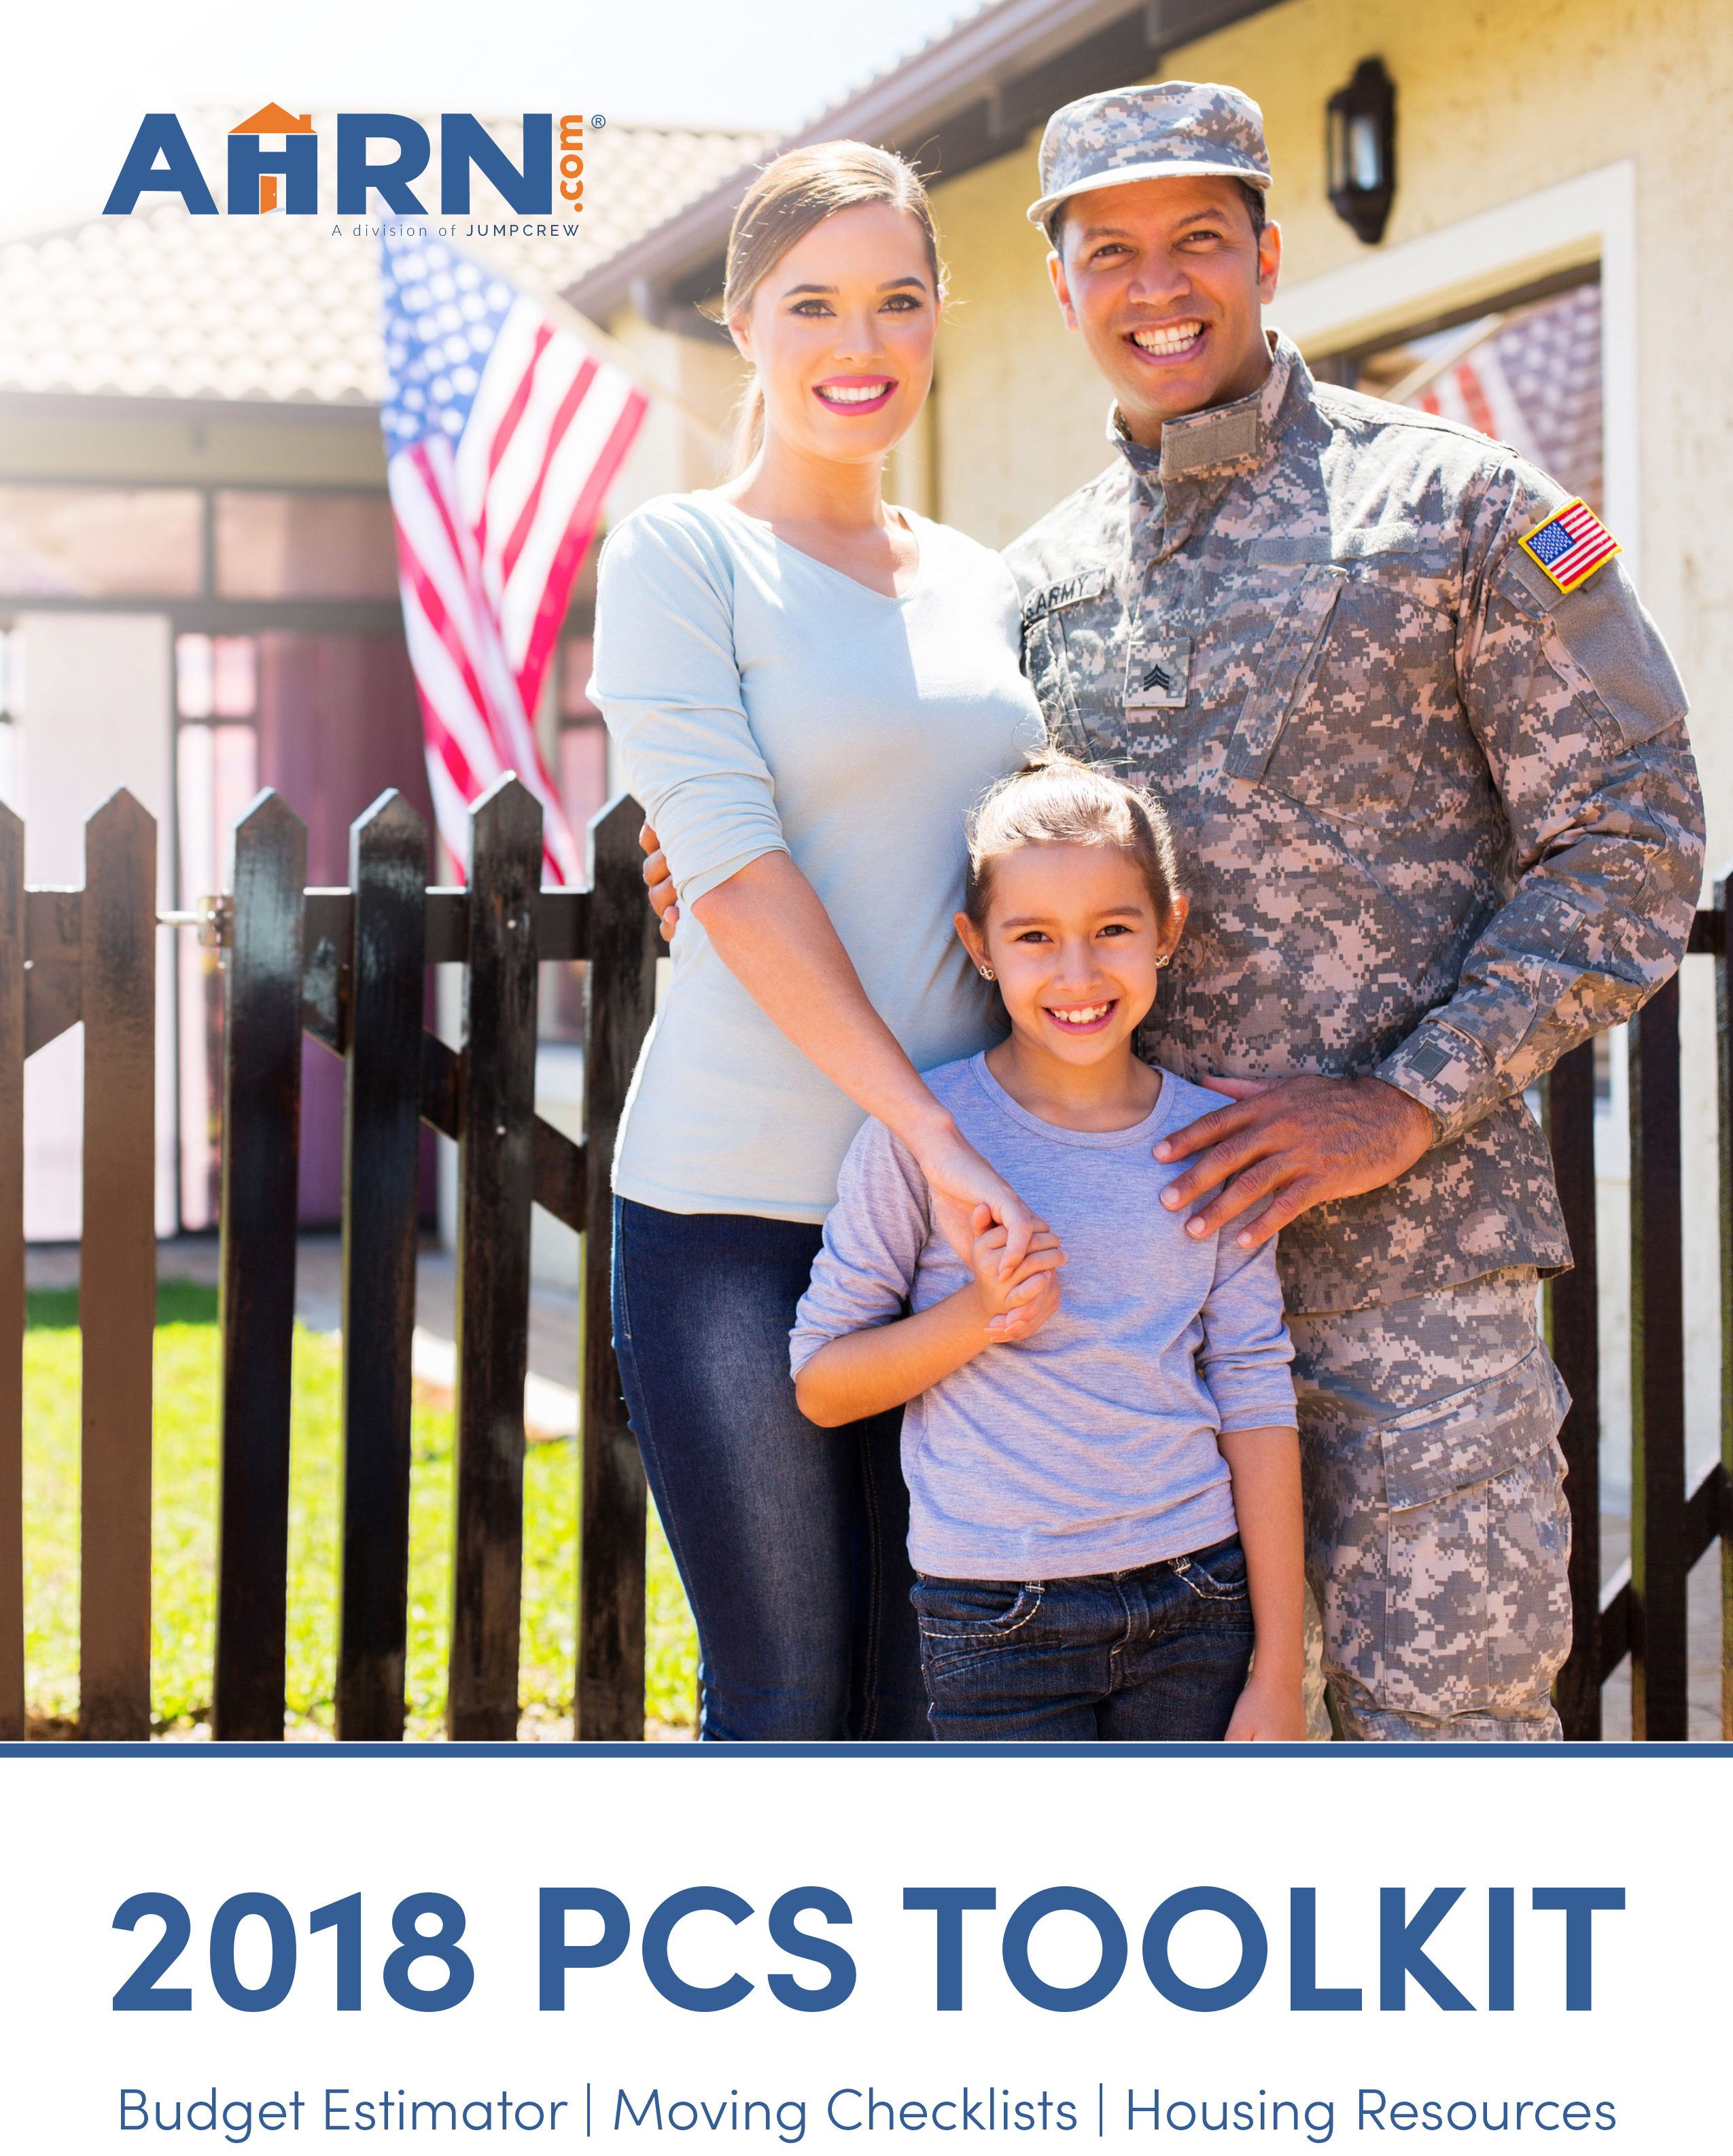 2018 PCS Toolkit